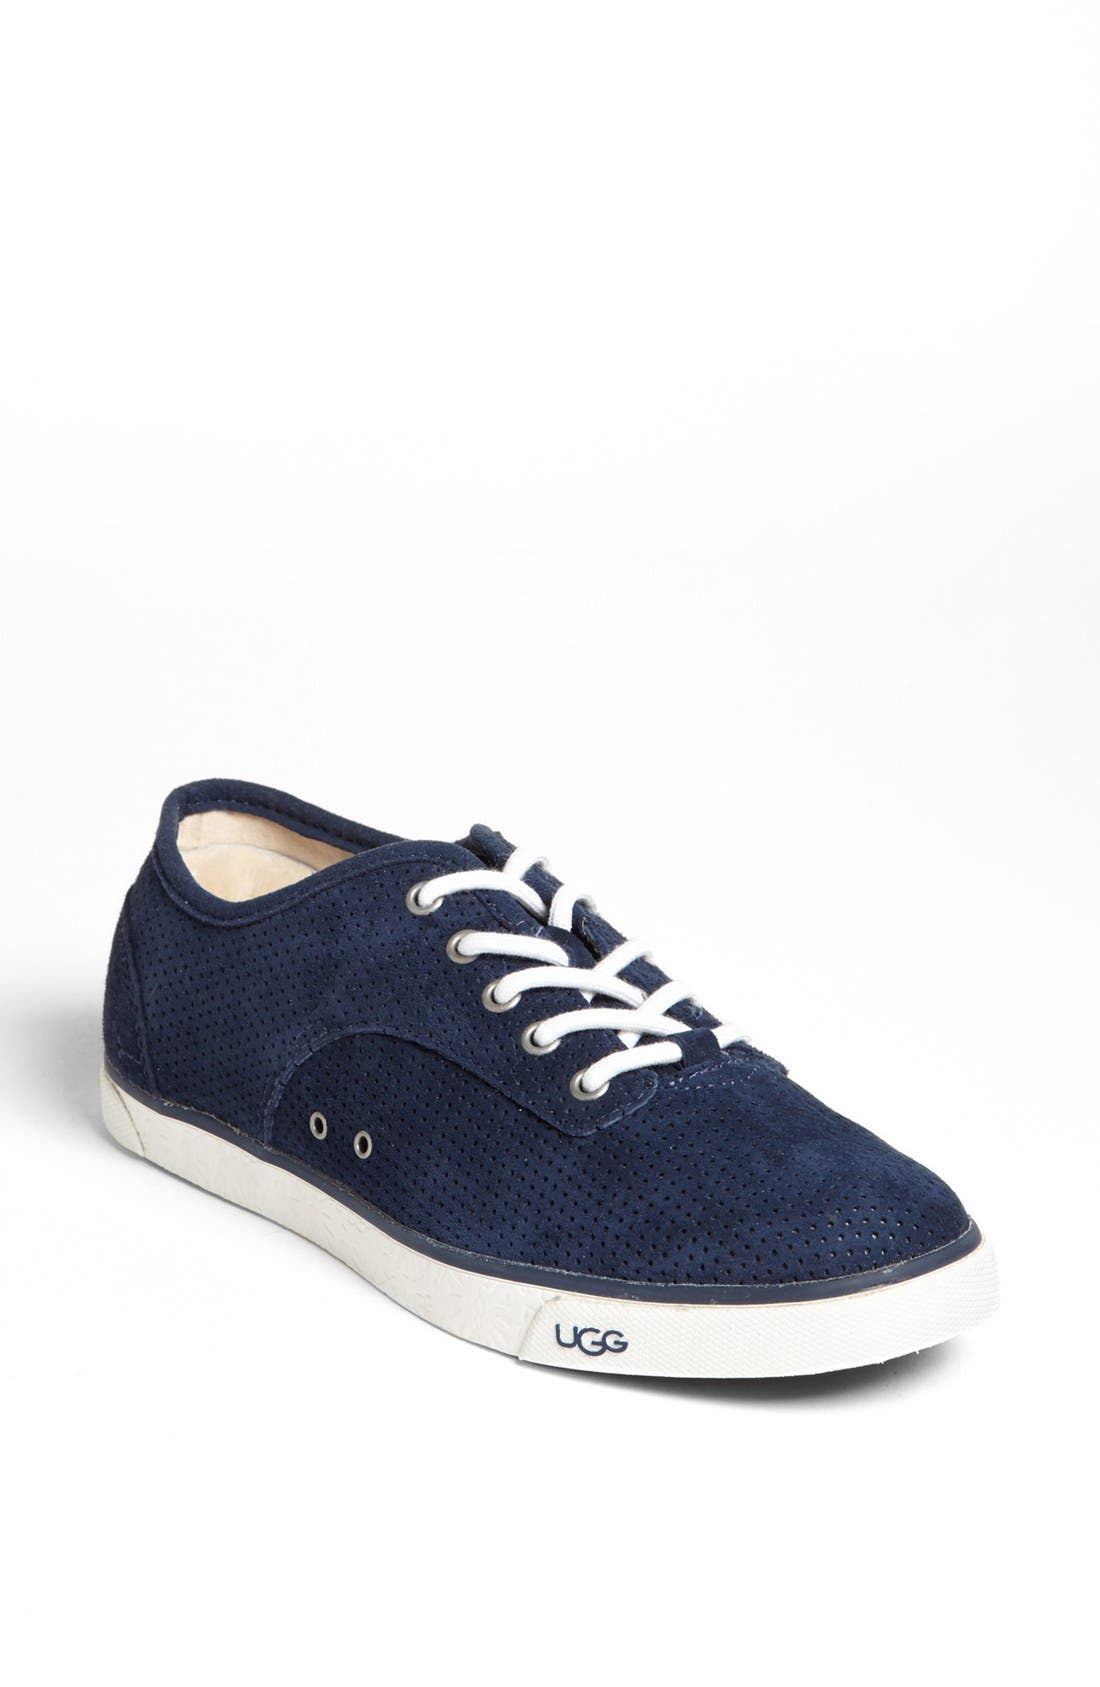 Main Image - UGG® Australia 'Hally' Perforated Suede Sneaker